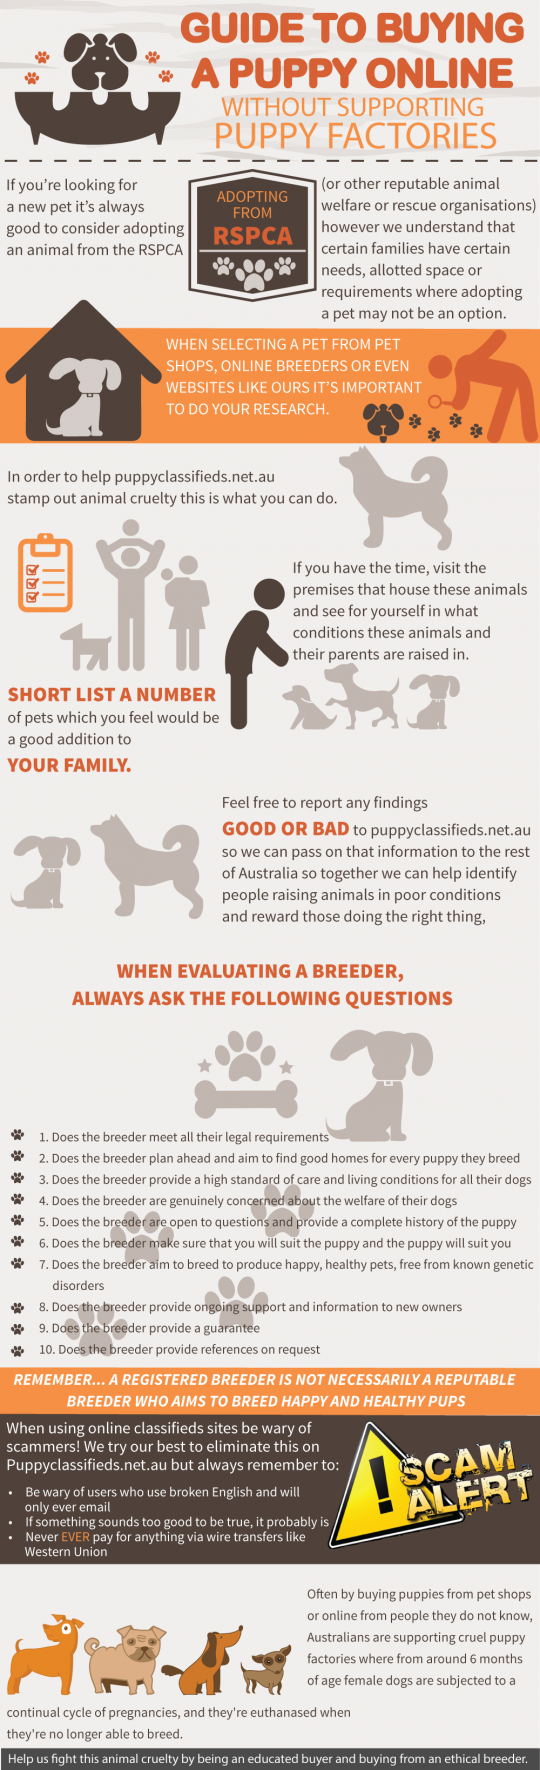 Guide to Buying a Puppy Online Without Support Puppy Factories